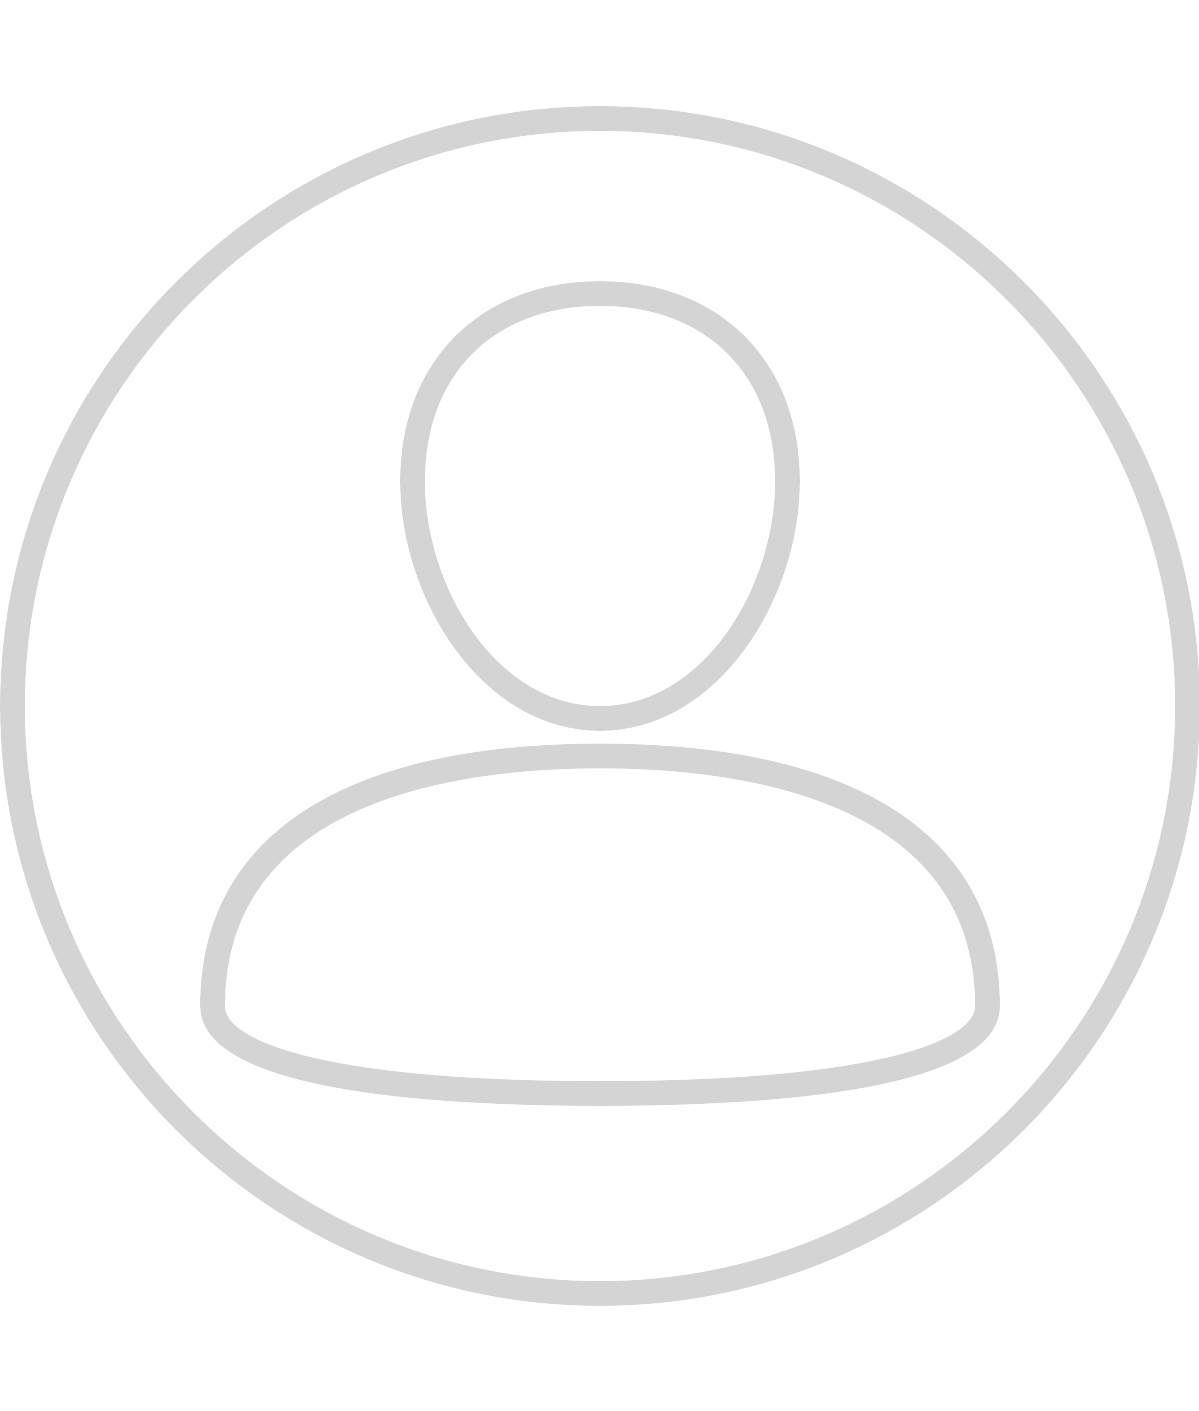 placeholder icon used in lieu of a photograph of Ian Kinzler